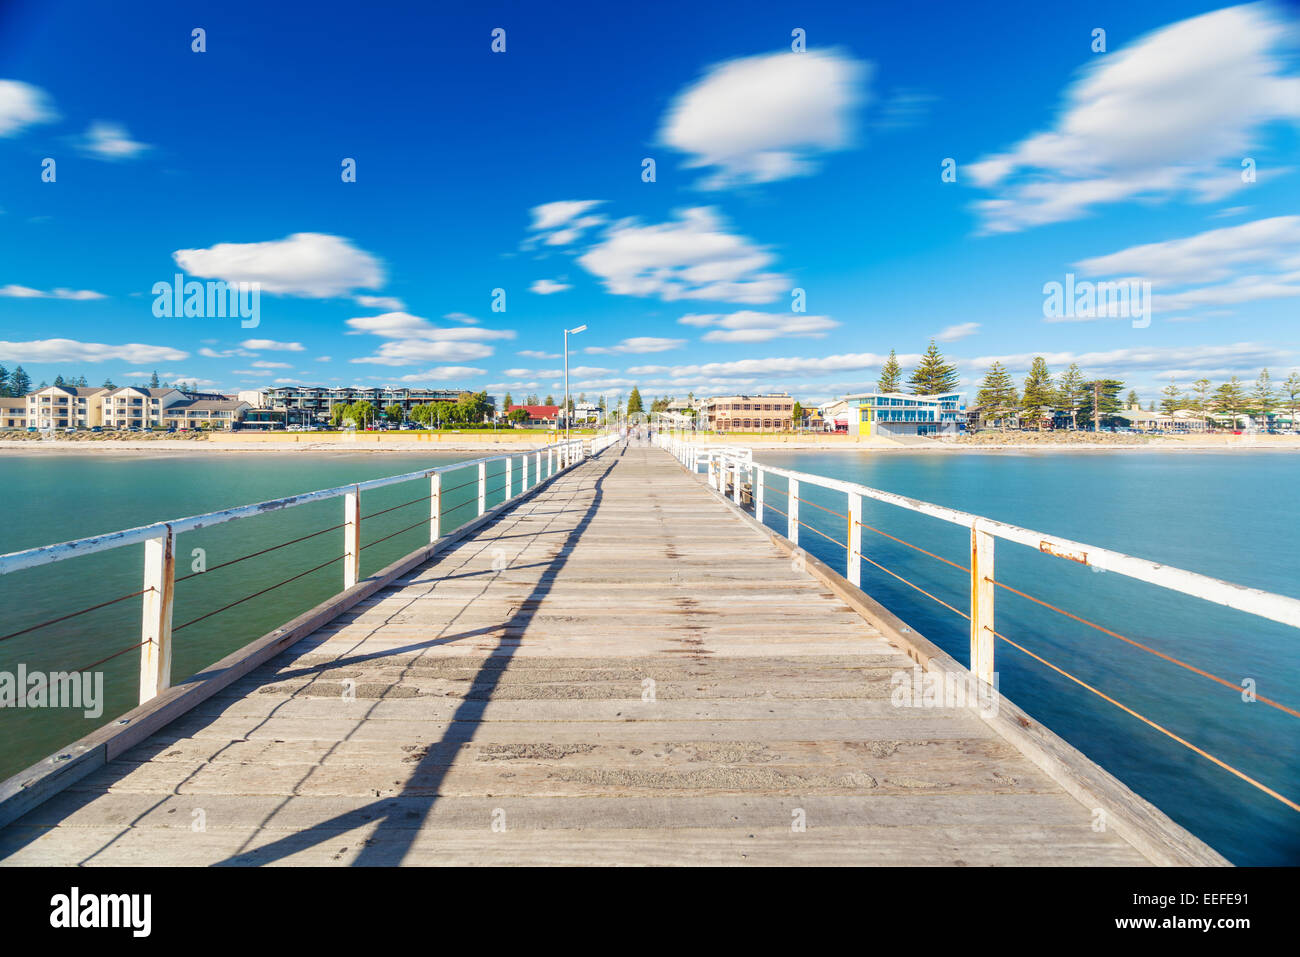 Long exposure shot of jetty in a beach - Stock Image